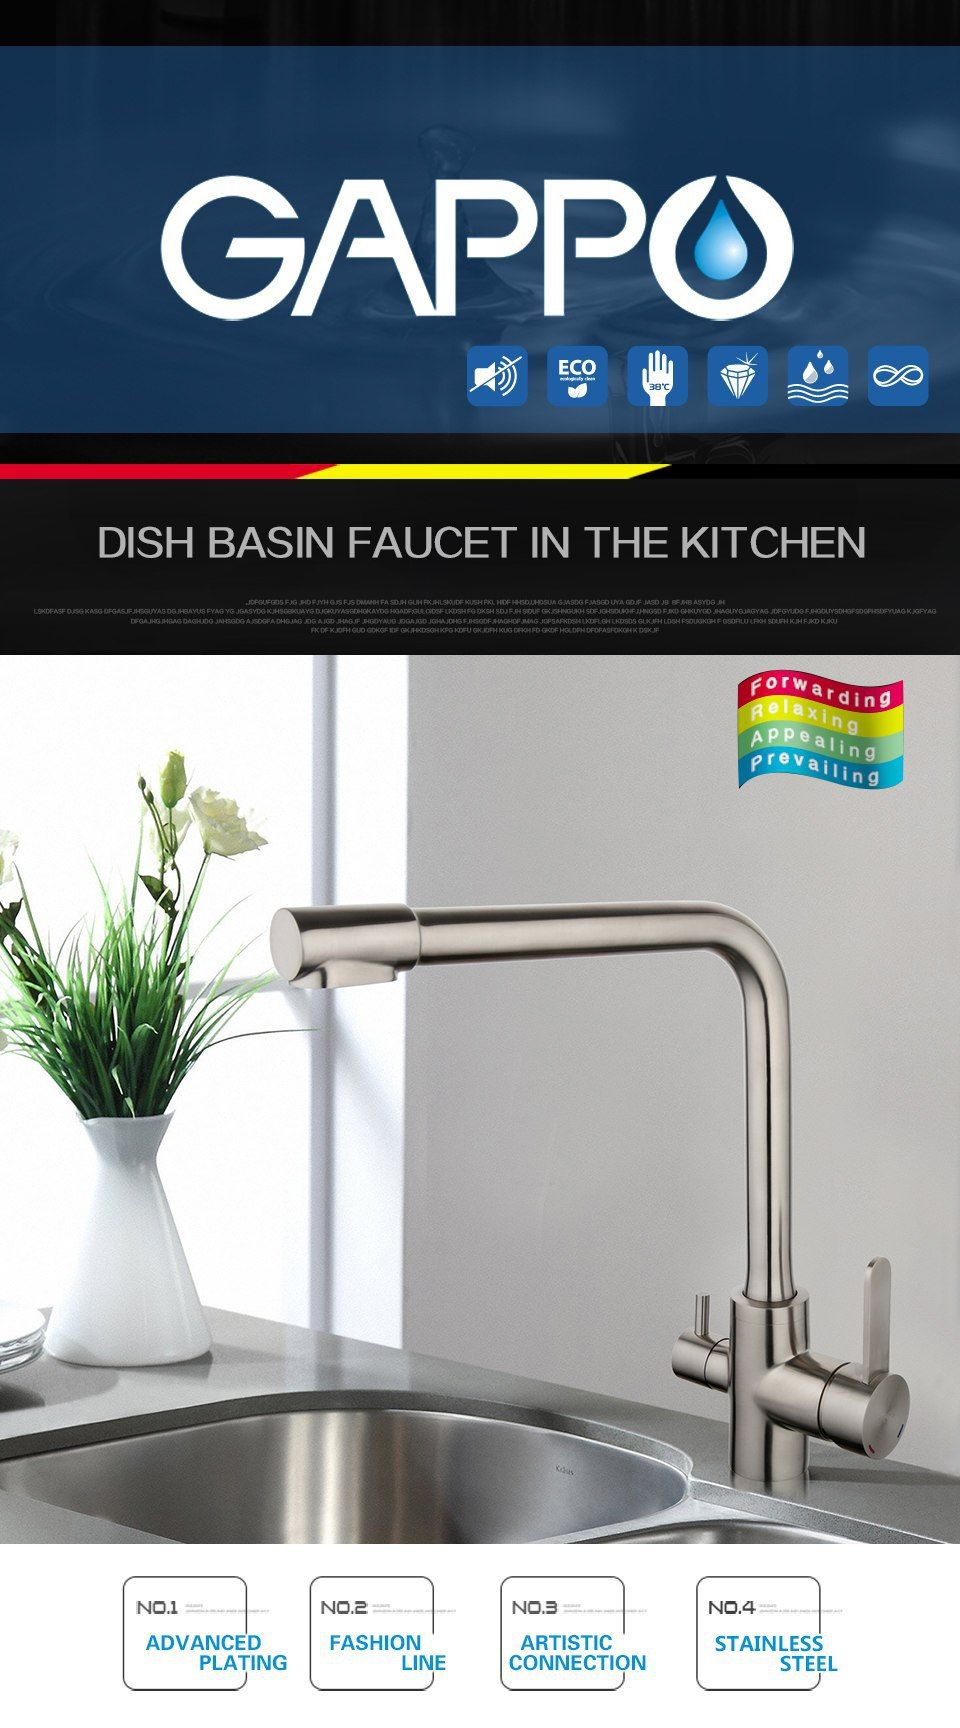 Best Price Gappo Kitchen Faucet Waterfall Kitchen Water Faucets Brass Faucet Water Mixer Kitchen Taps Sink Water Single Deal With Faucet Check More At Https M